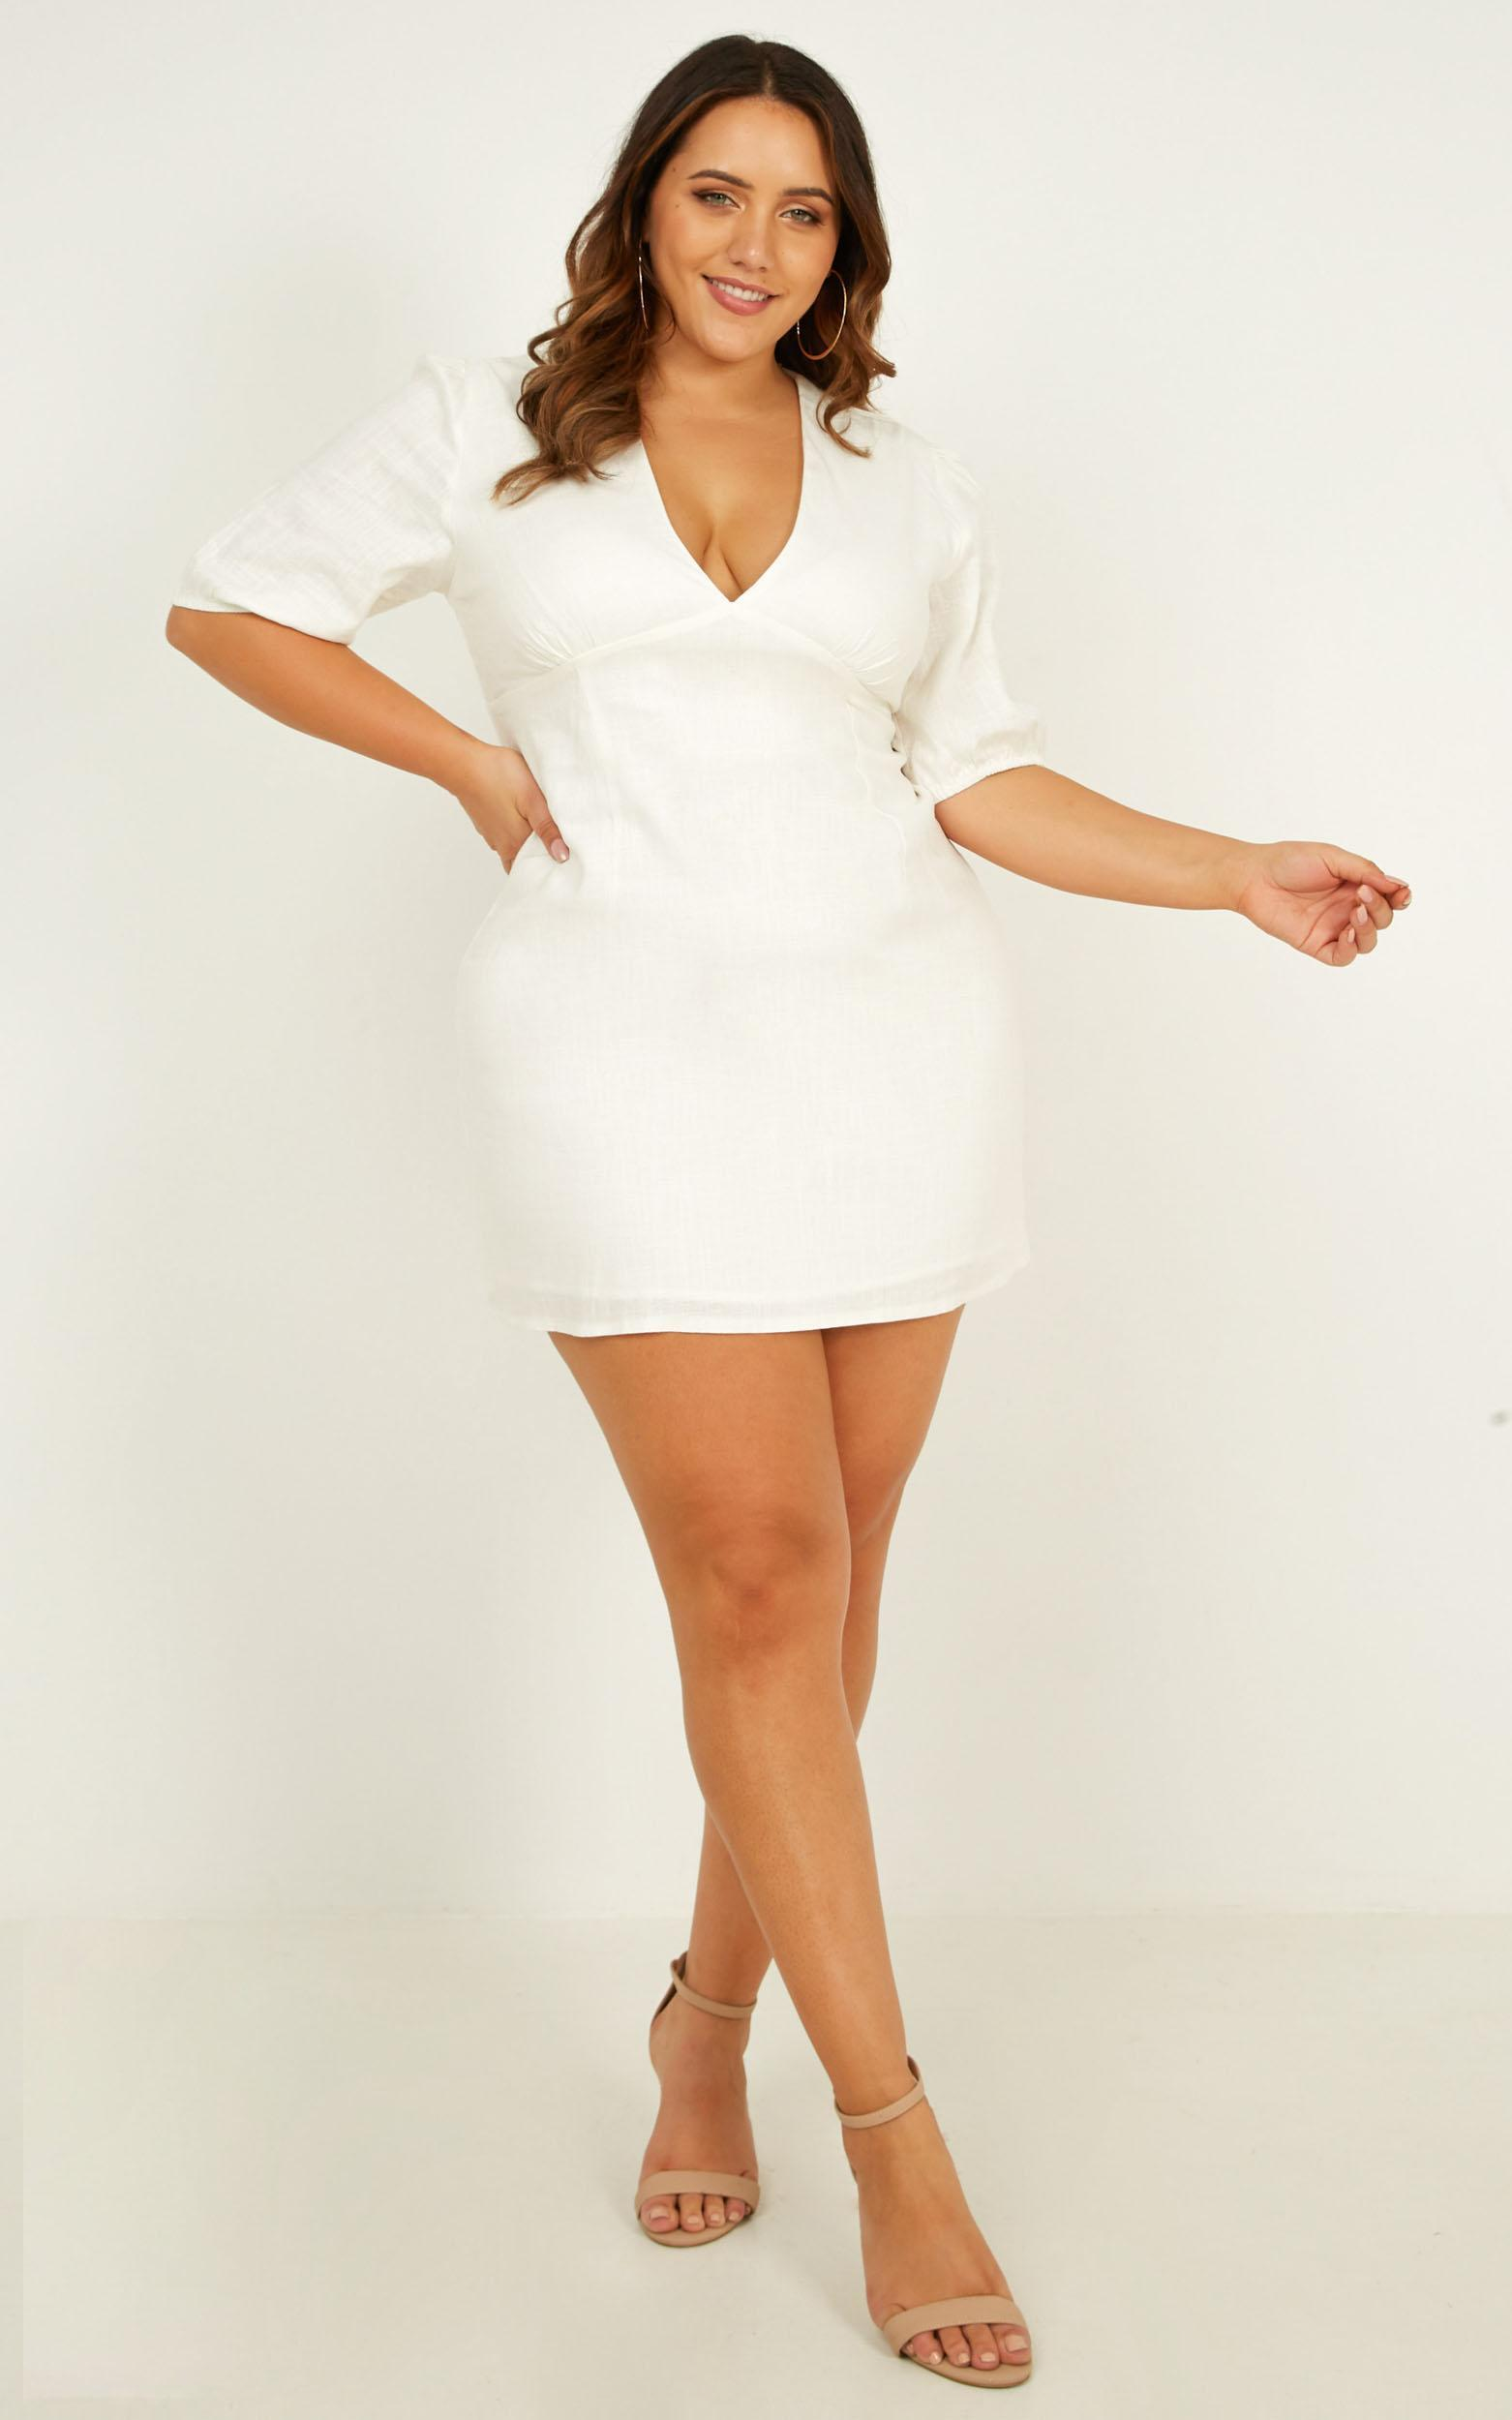 Endless Power Dress In white linen look - 14 (XL), White, hi-res image number null